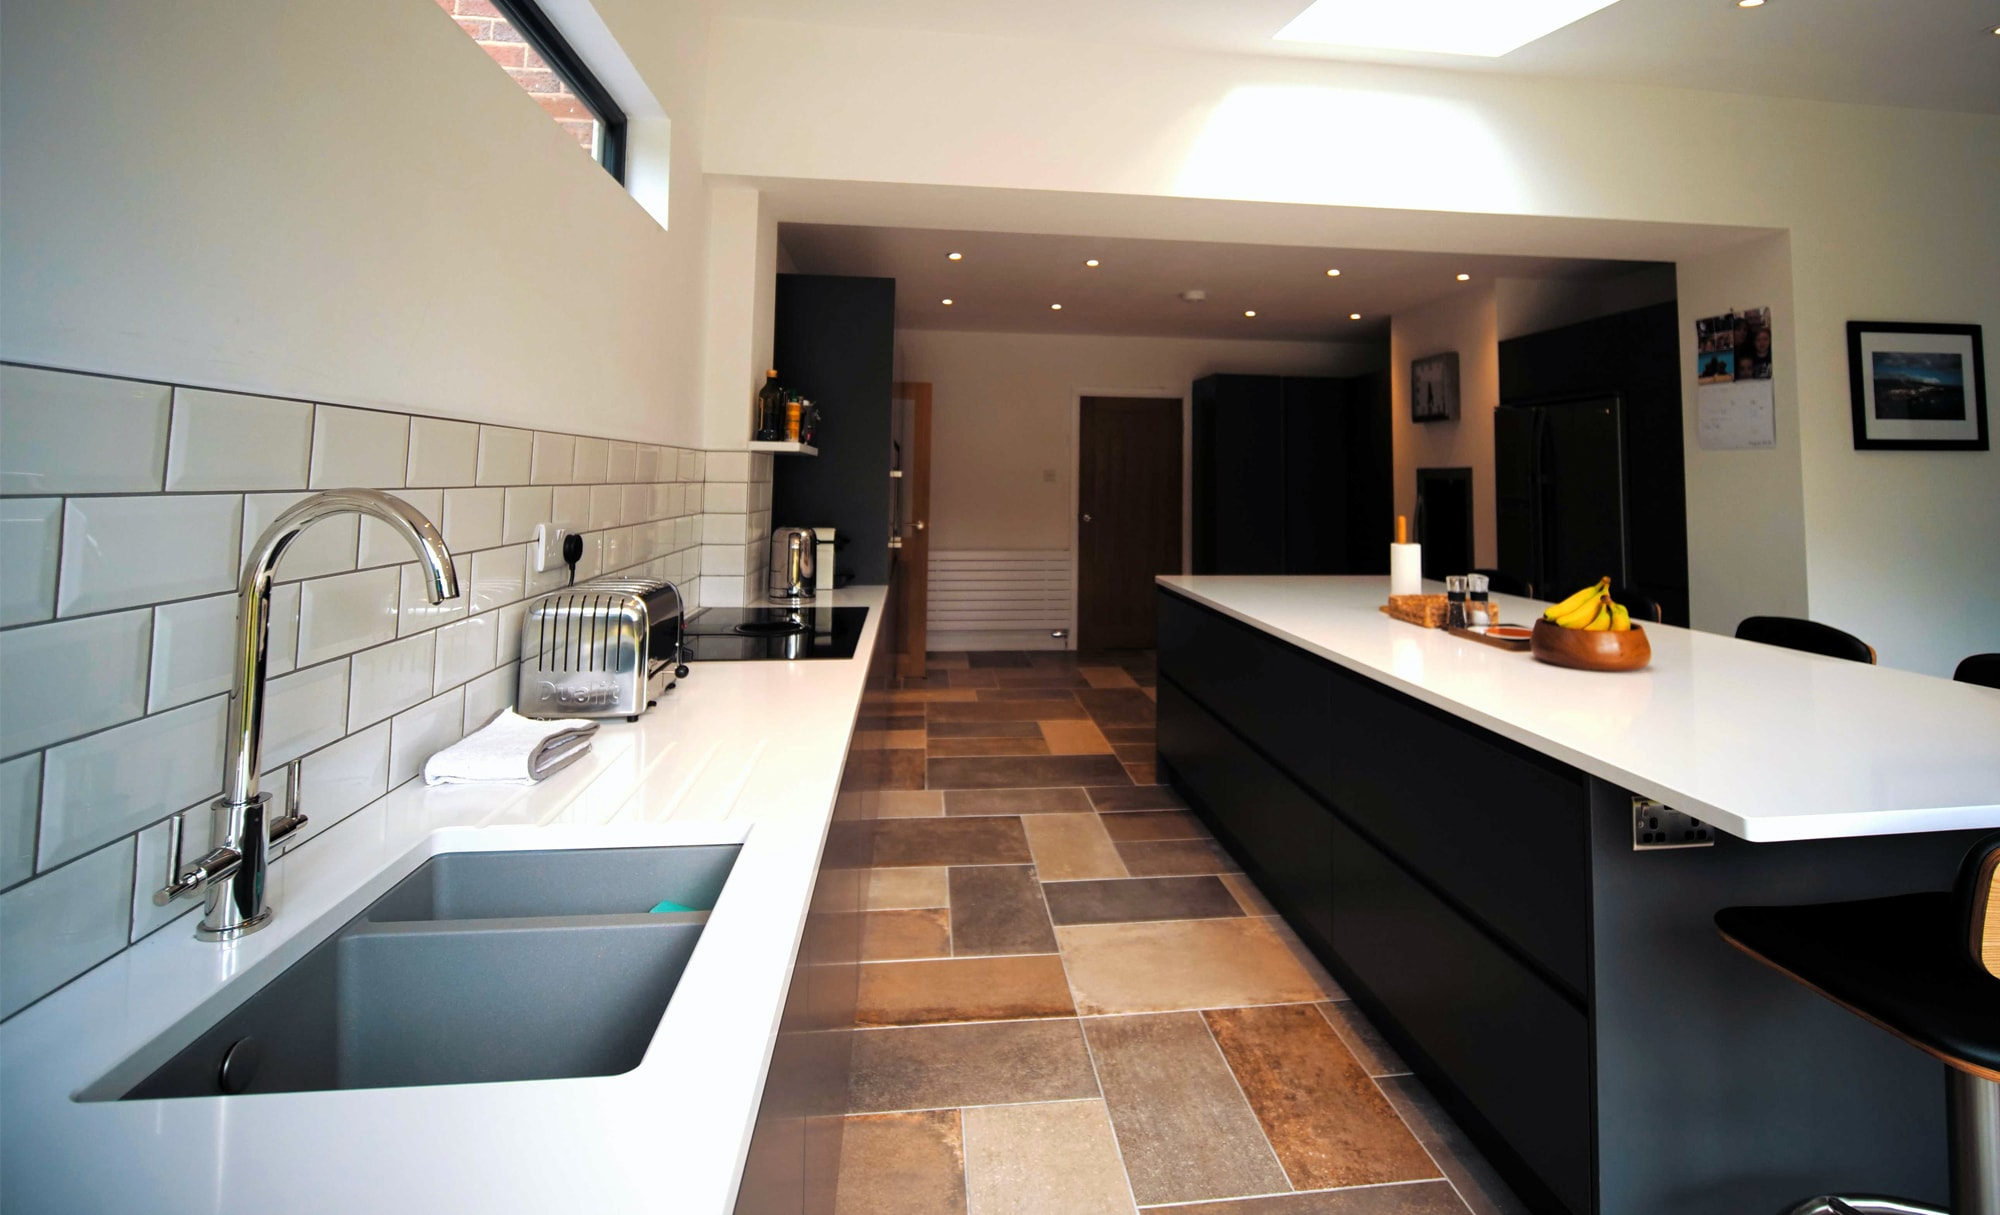 The Gallery Strada Matte Graphite Kitchen for Mr & Mrs Kiely of Stourbridge